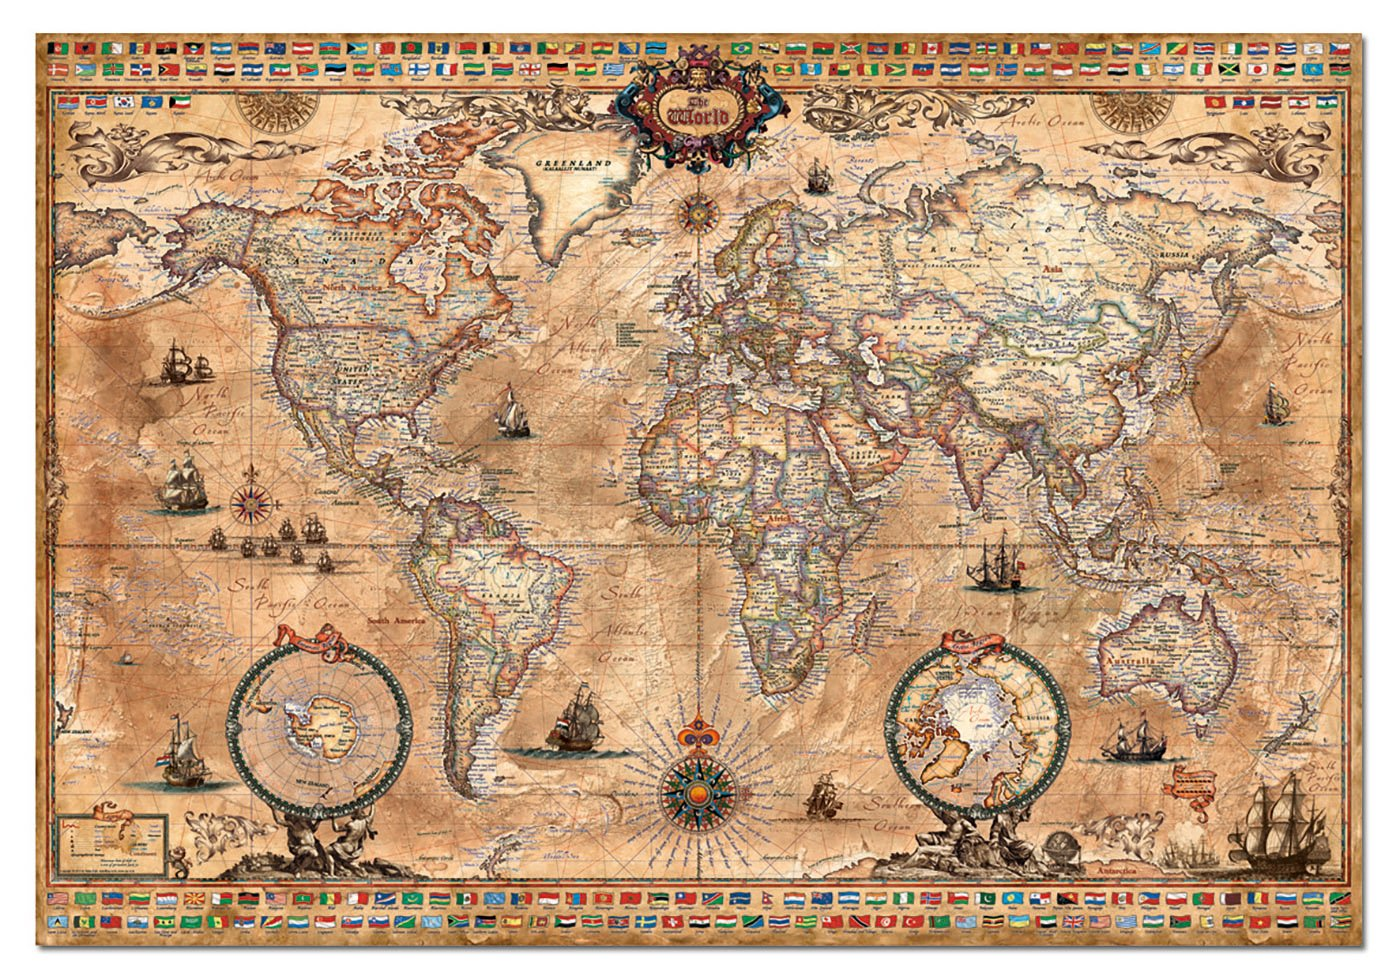 Old world map jigsaw puzzle jigsaw puzzles for adults if you are looking for a challenging old world map jigsaw puzzle that is really beautiful when completed this 1000 piece antique world map by educa might be gumiabroncs Images